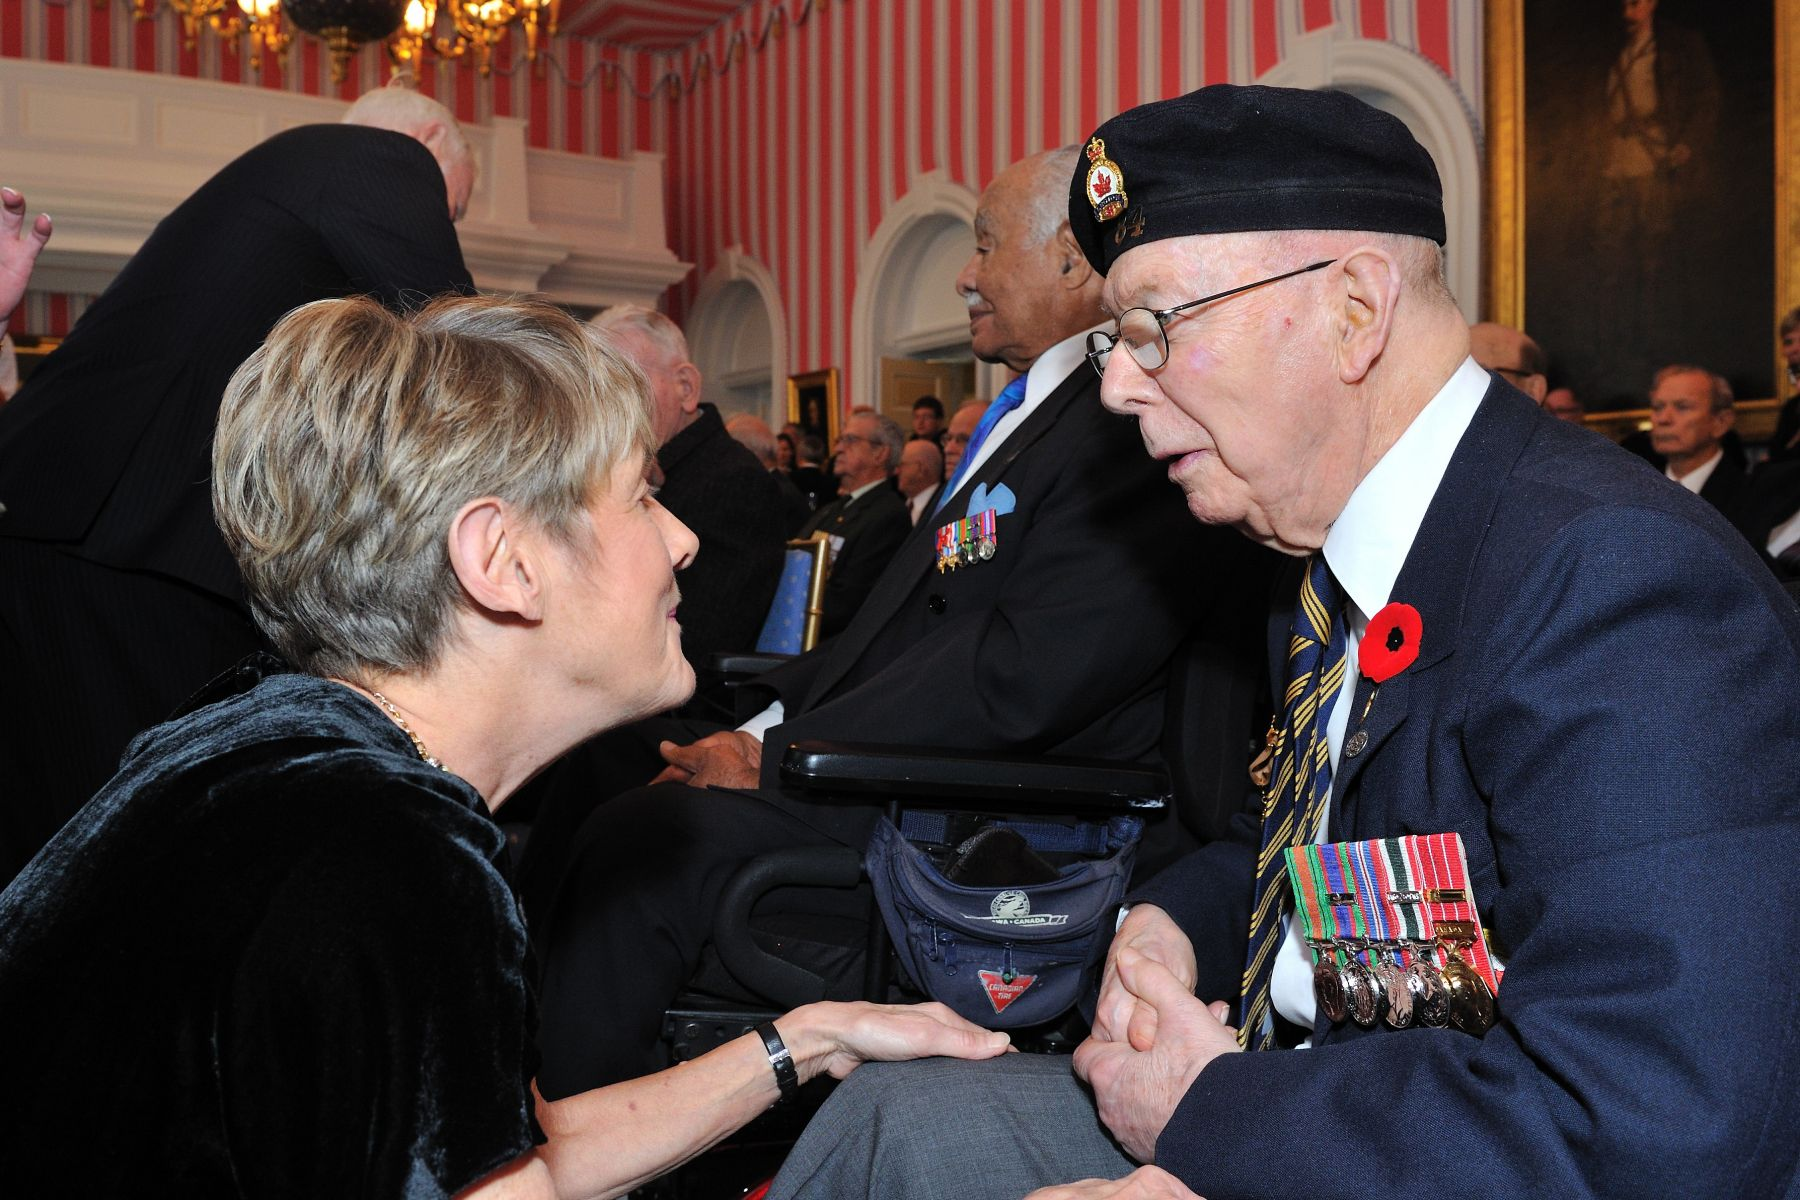 Mrs. Sharon Johnston also distributed poppies to veterans.